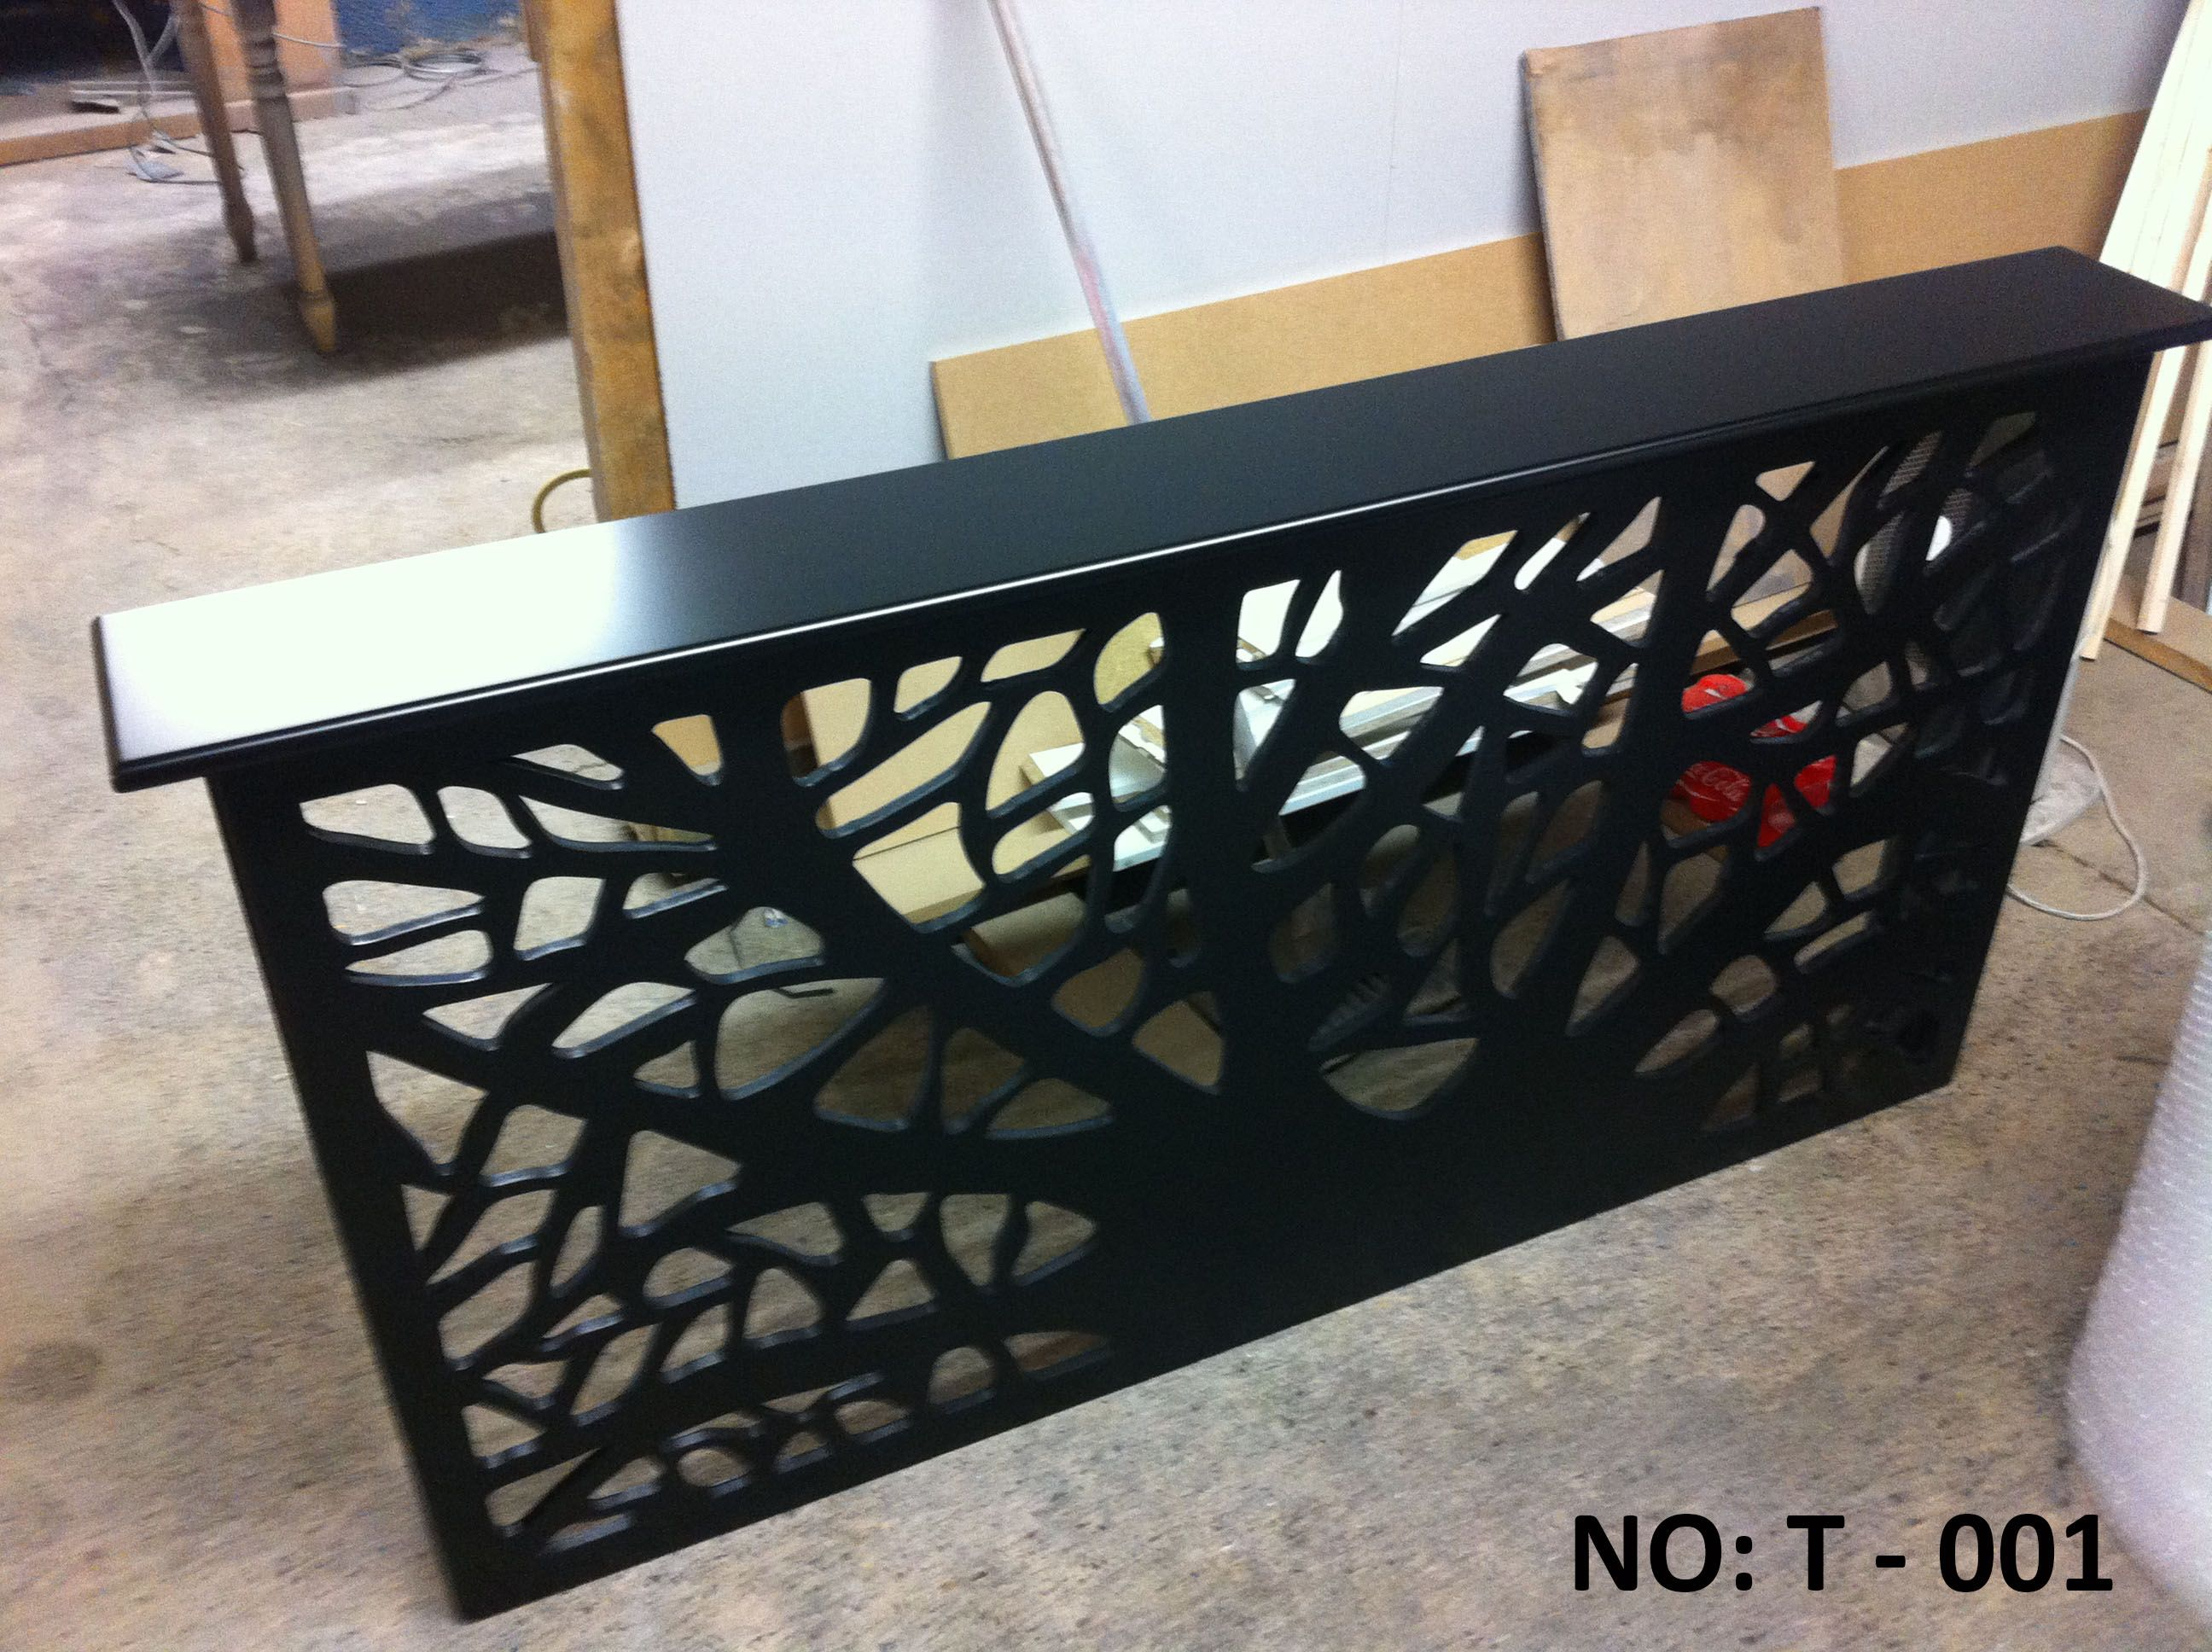 Cool Radiator Covers To Complete Your Home Accessories